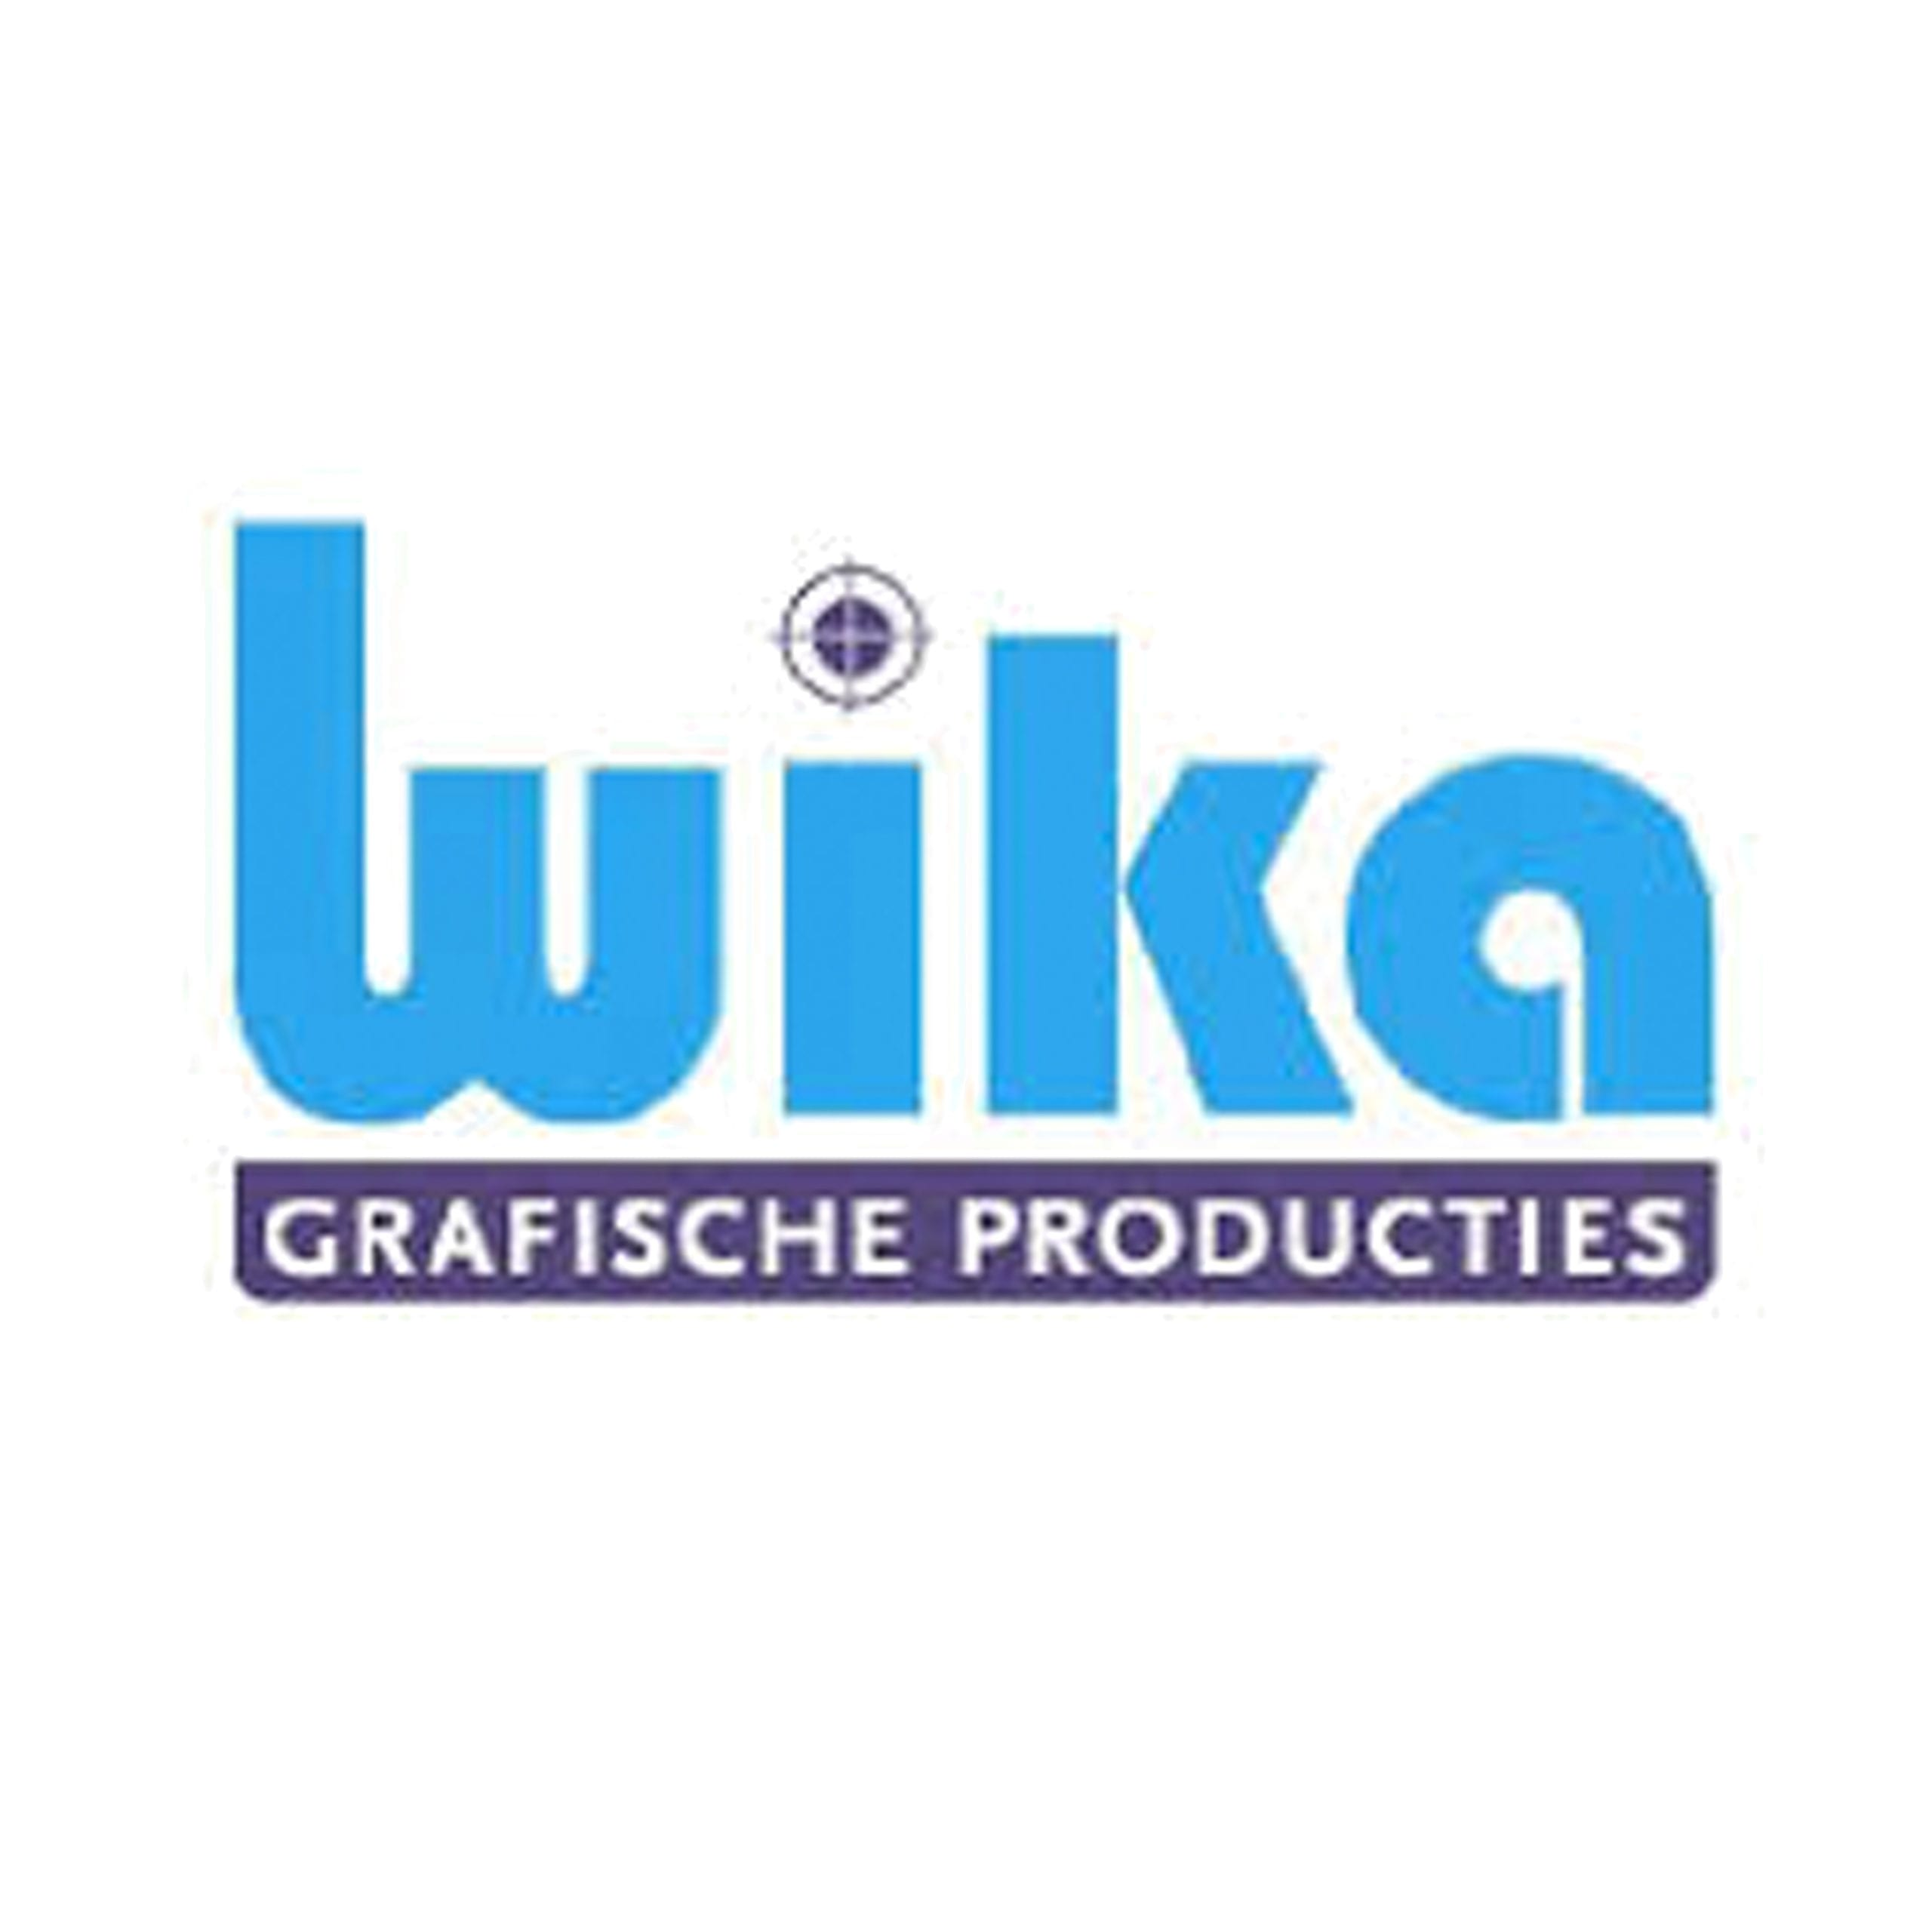 Wika - Team van de week 31-01